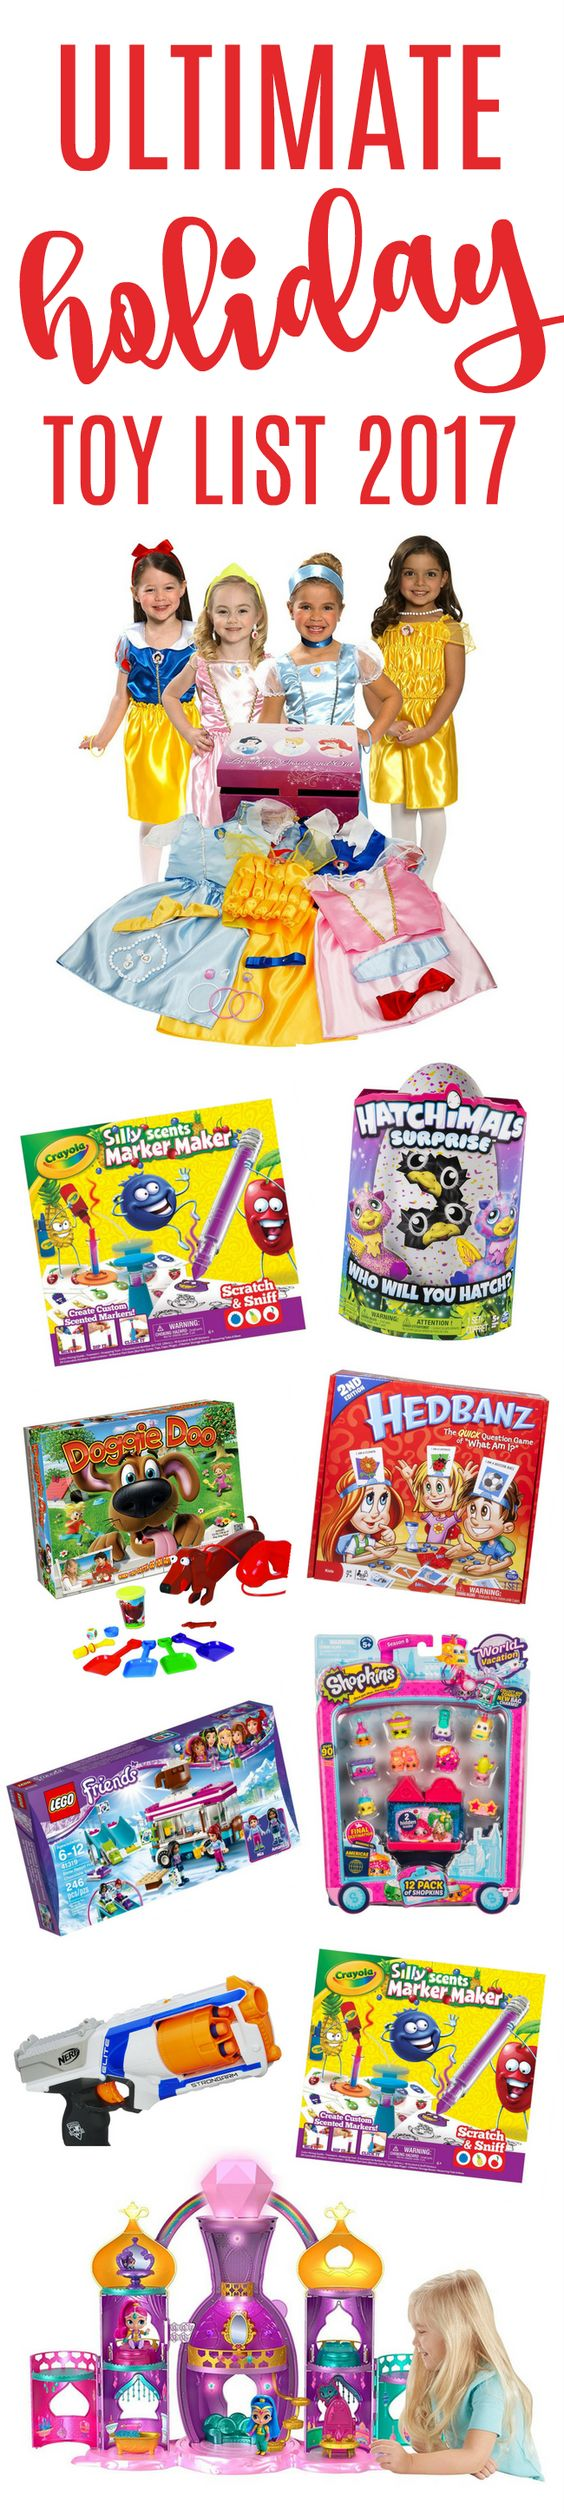 Ultimate Holiday Gift Guide For Kids - Top Holiday Toys